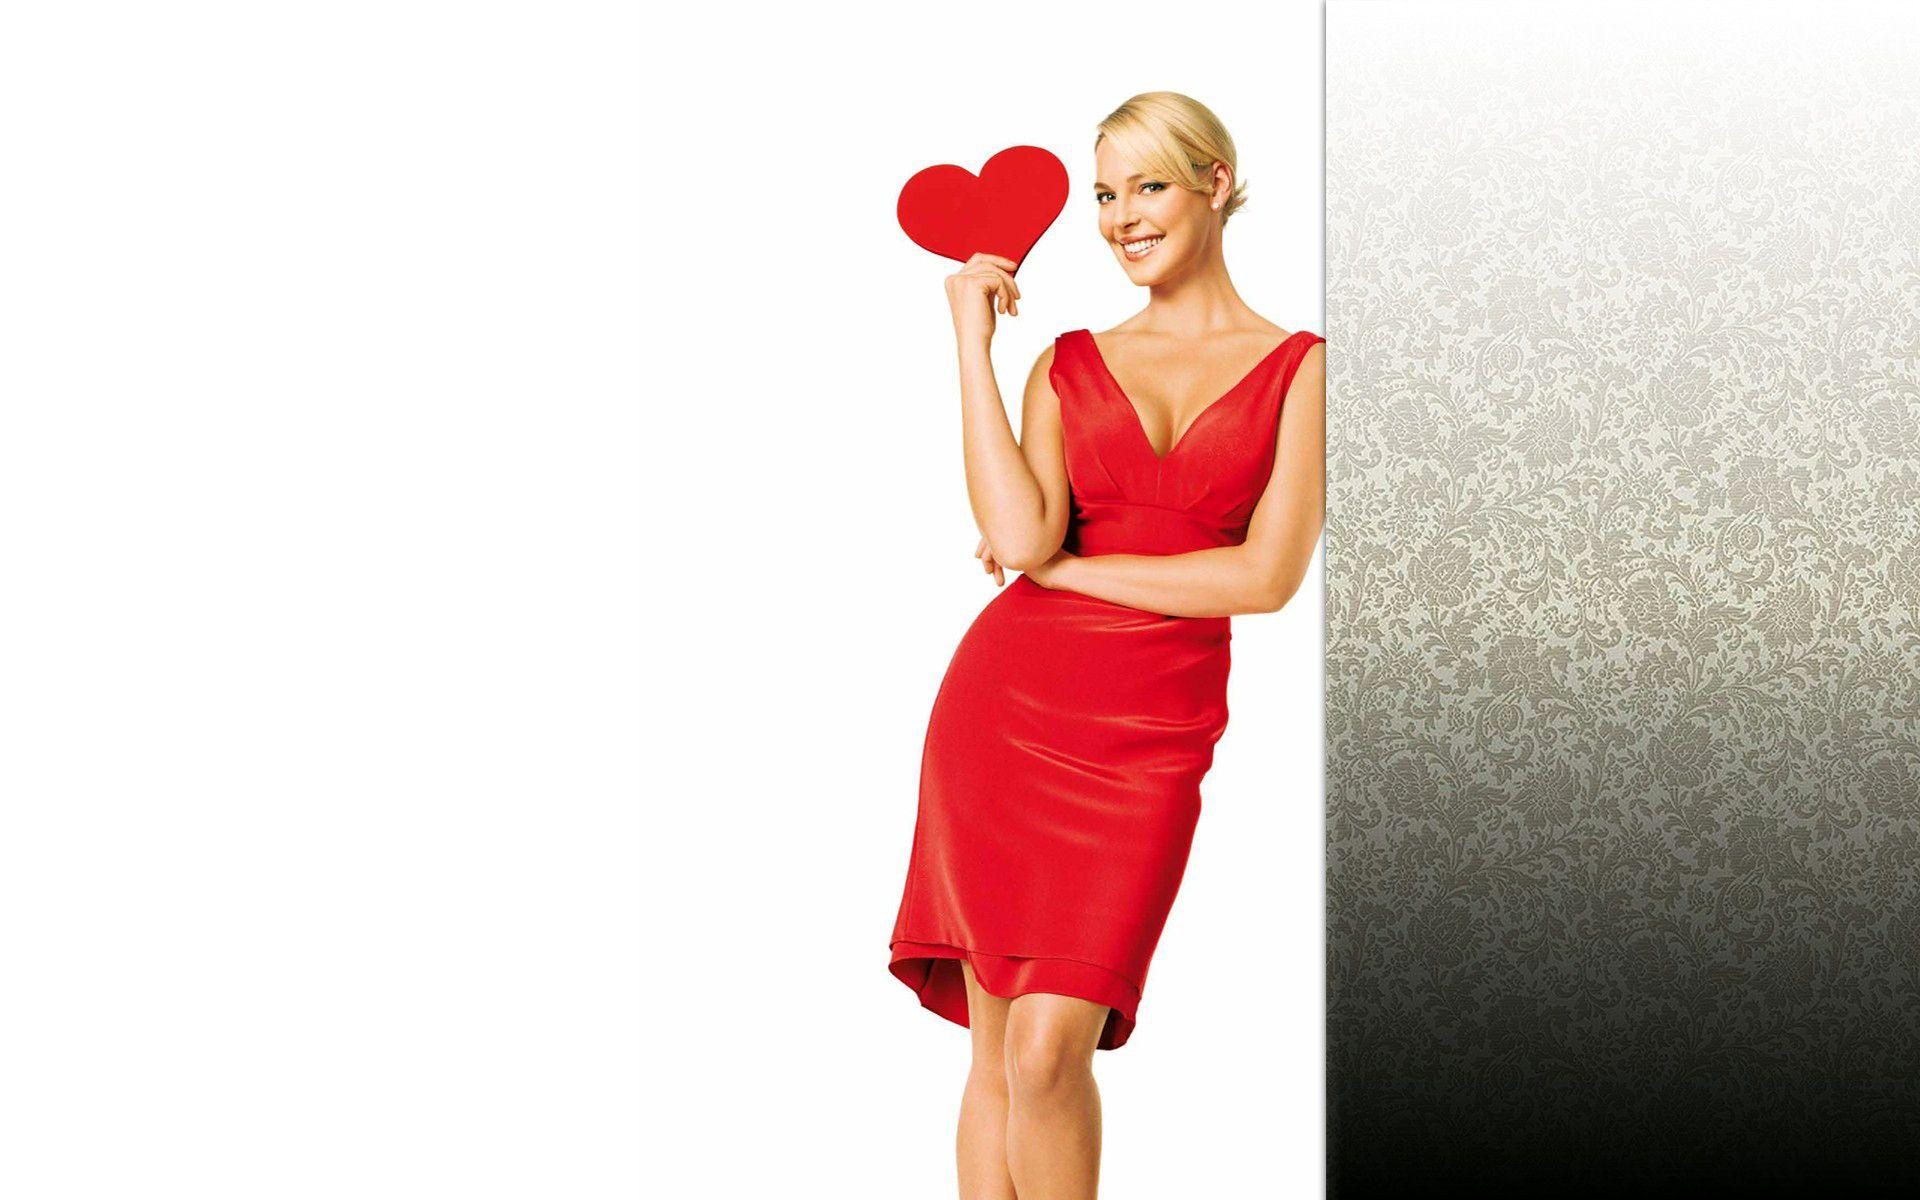 Super katherine heigl Wallpapers